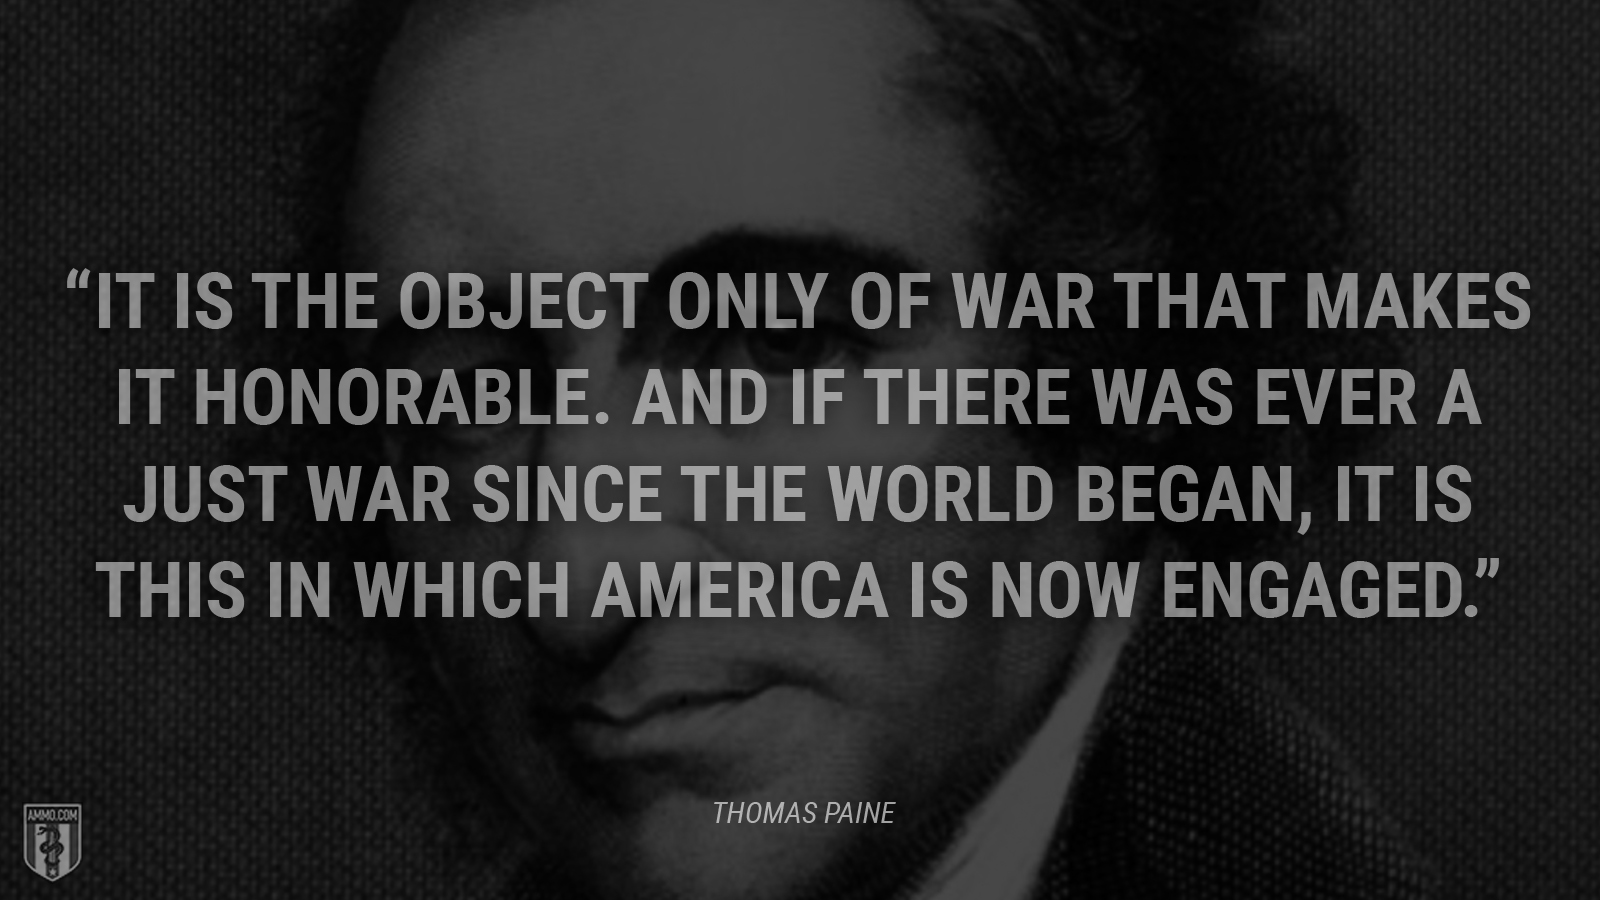 """It is the object only of war that makes it honorable. And if there was ever a just war since the world began, it is this in which America is now engaged."" - Thomas Paine"